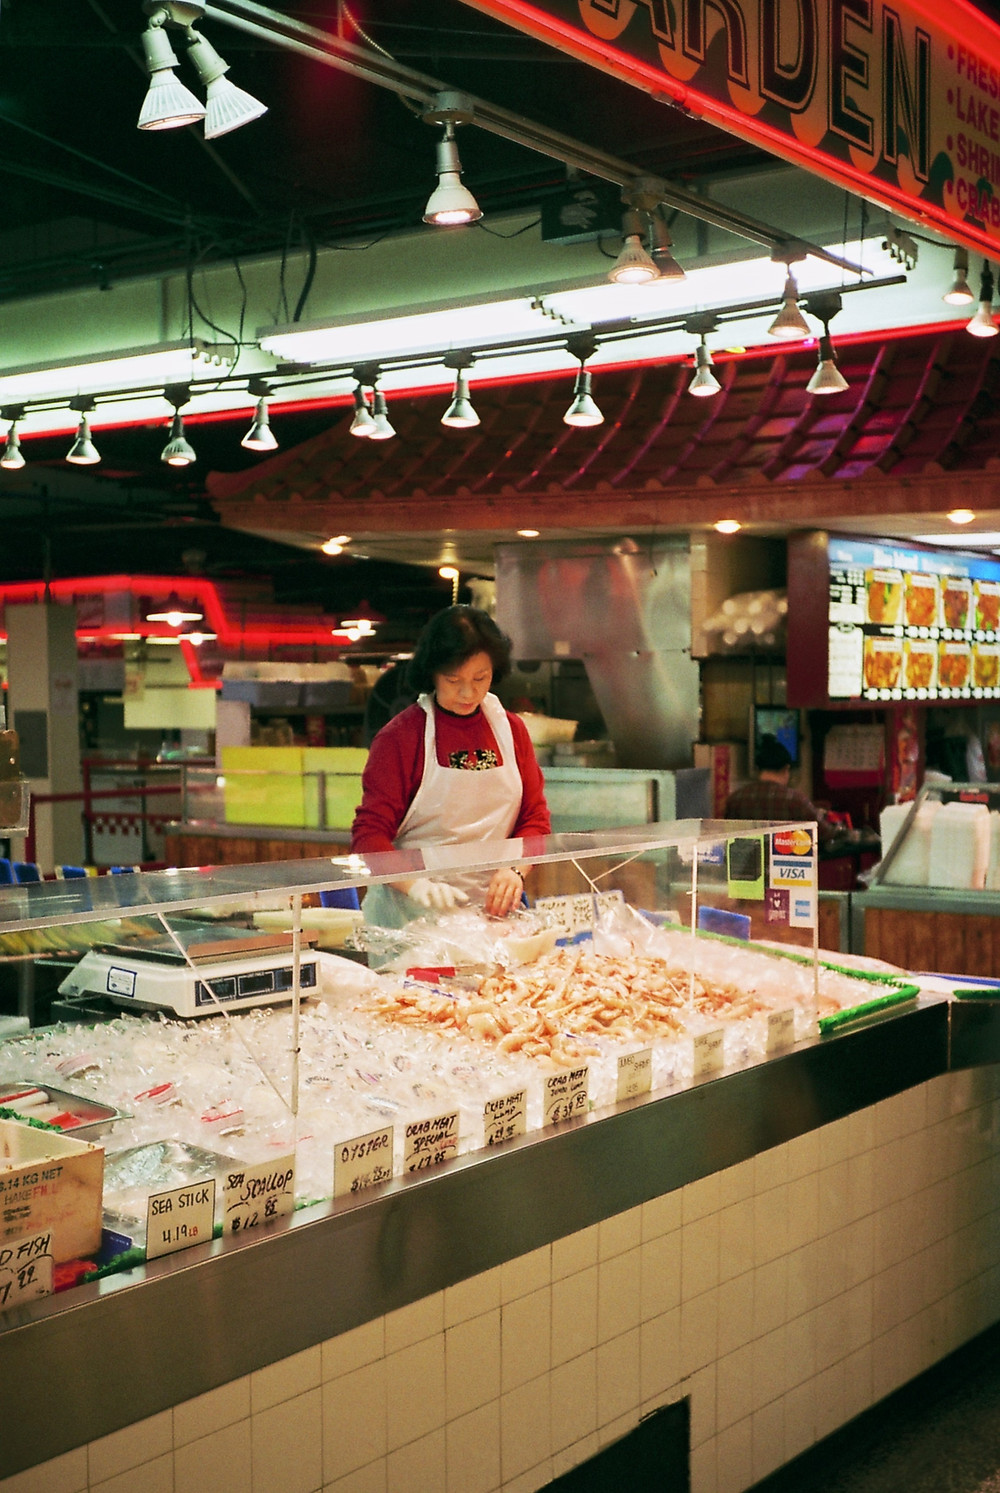 Seafood vendor at Lexington Market in Baltimore, Maryland